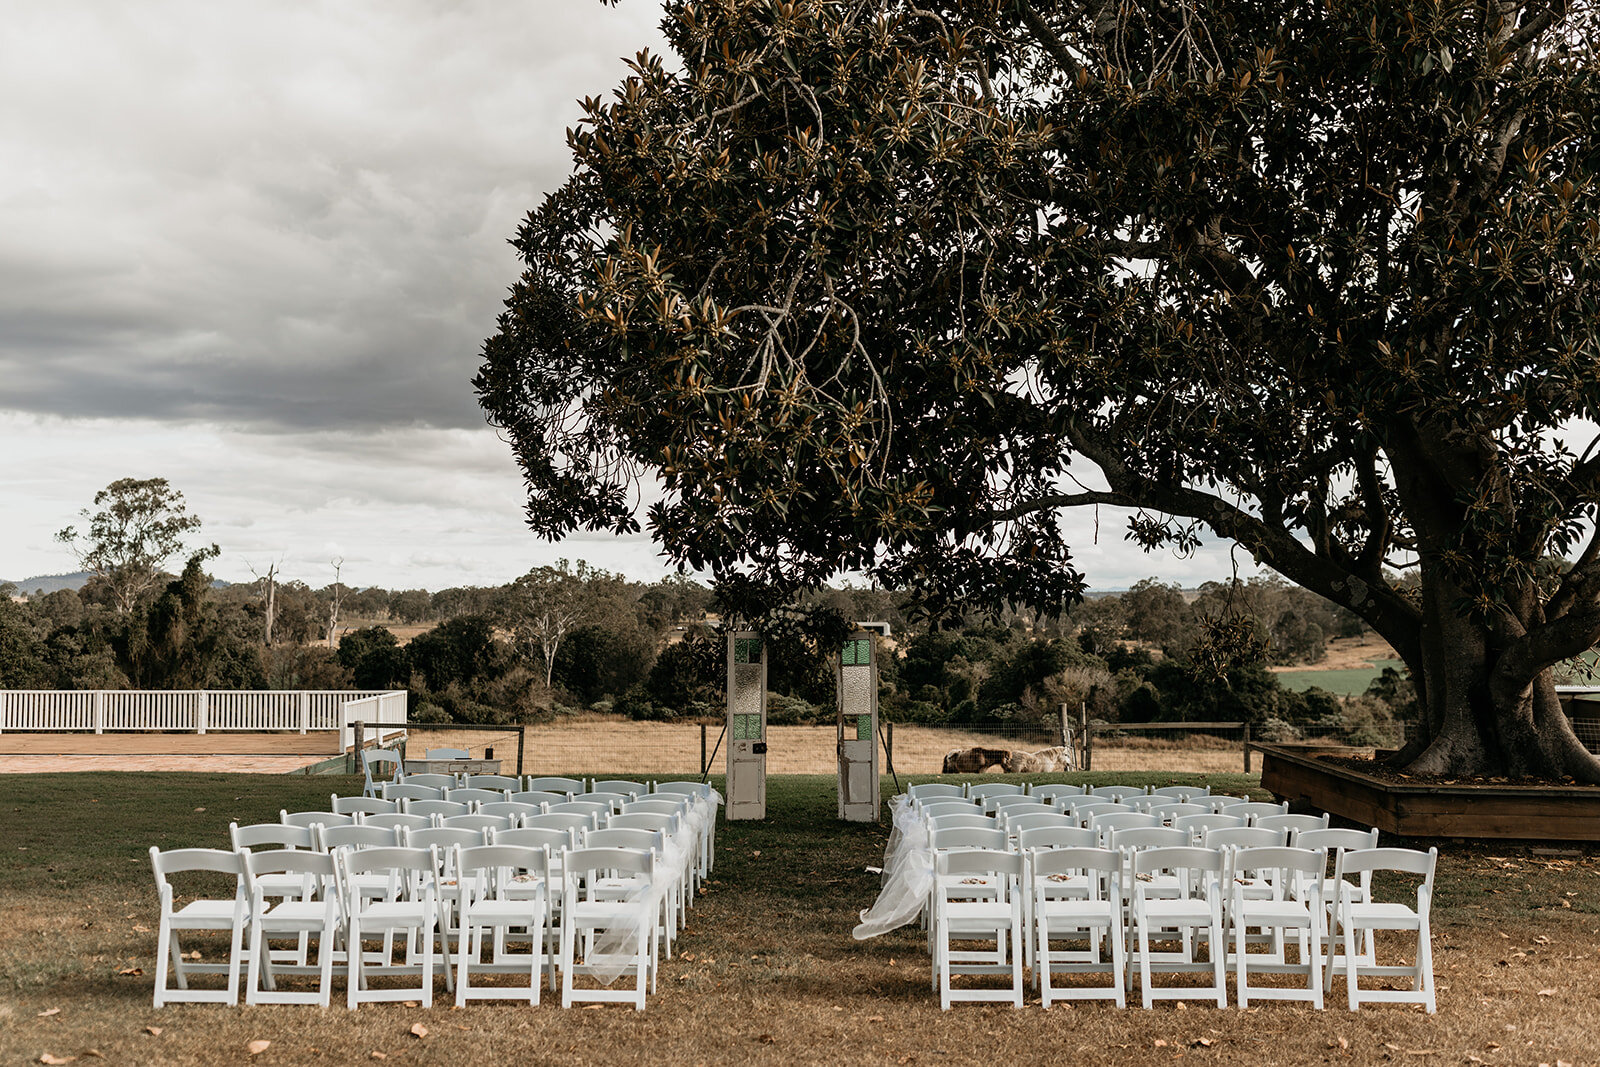 Albert River Wines - The glorious setting with its sweeping drive, the colonnaded veranda and undulating hills covered with vines will provide an immaculate setting for what is sure to be an unforgettable day.